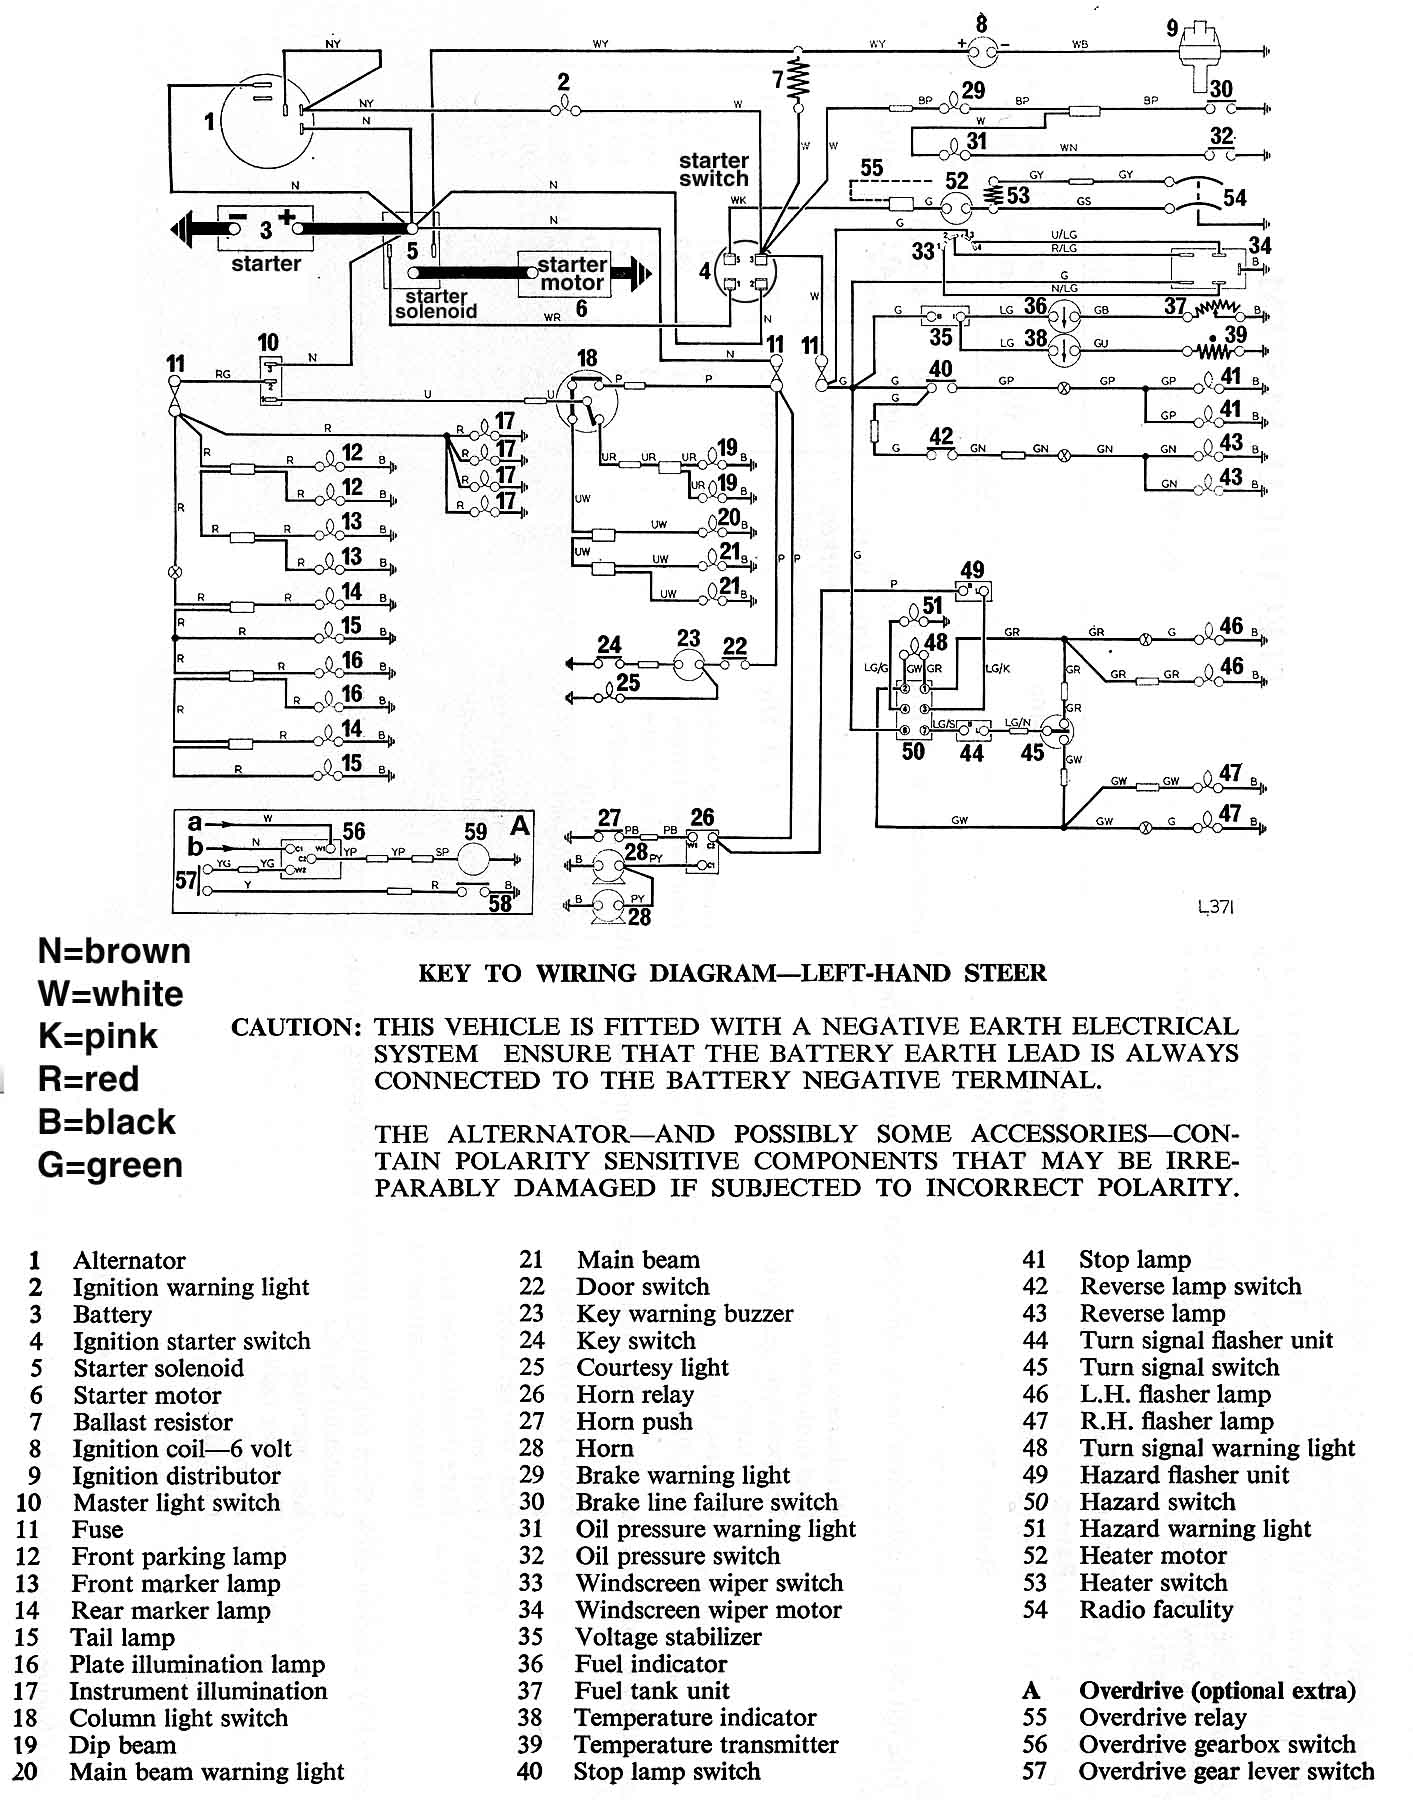 MKIVwire hazard switch removal and trouble shooting spitfire & gt6 forum hazard warning switch wiring diagram at soozxer.org